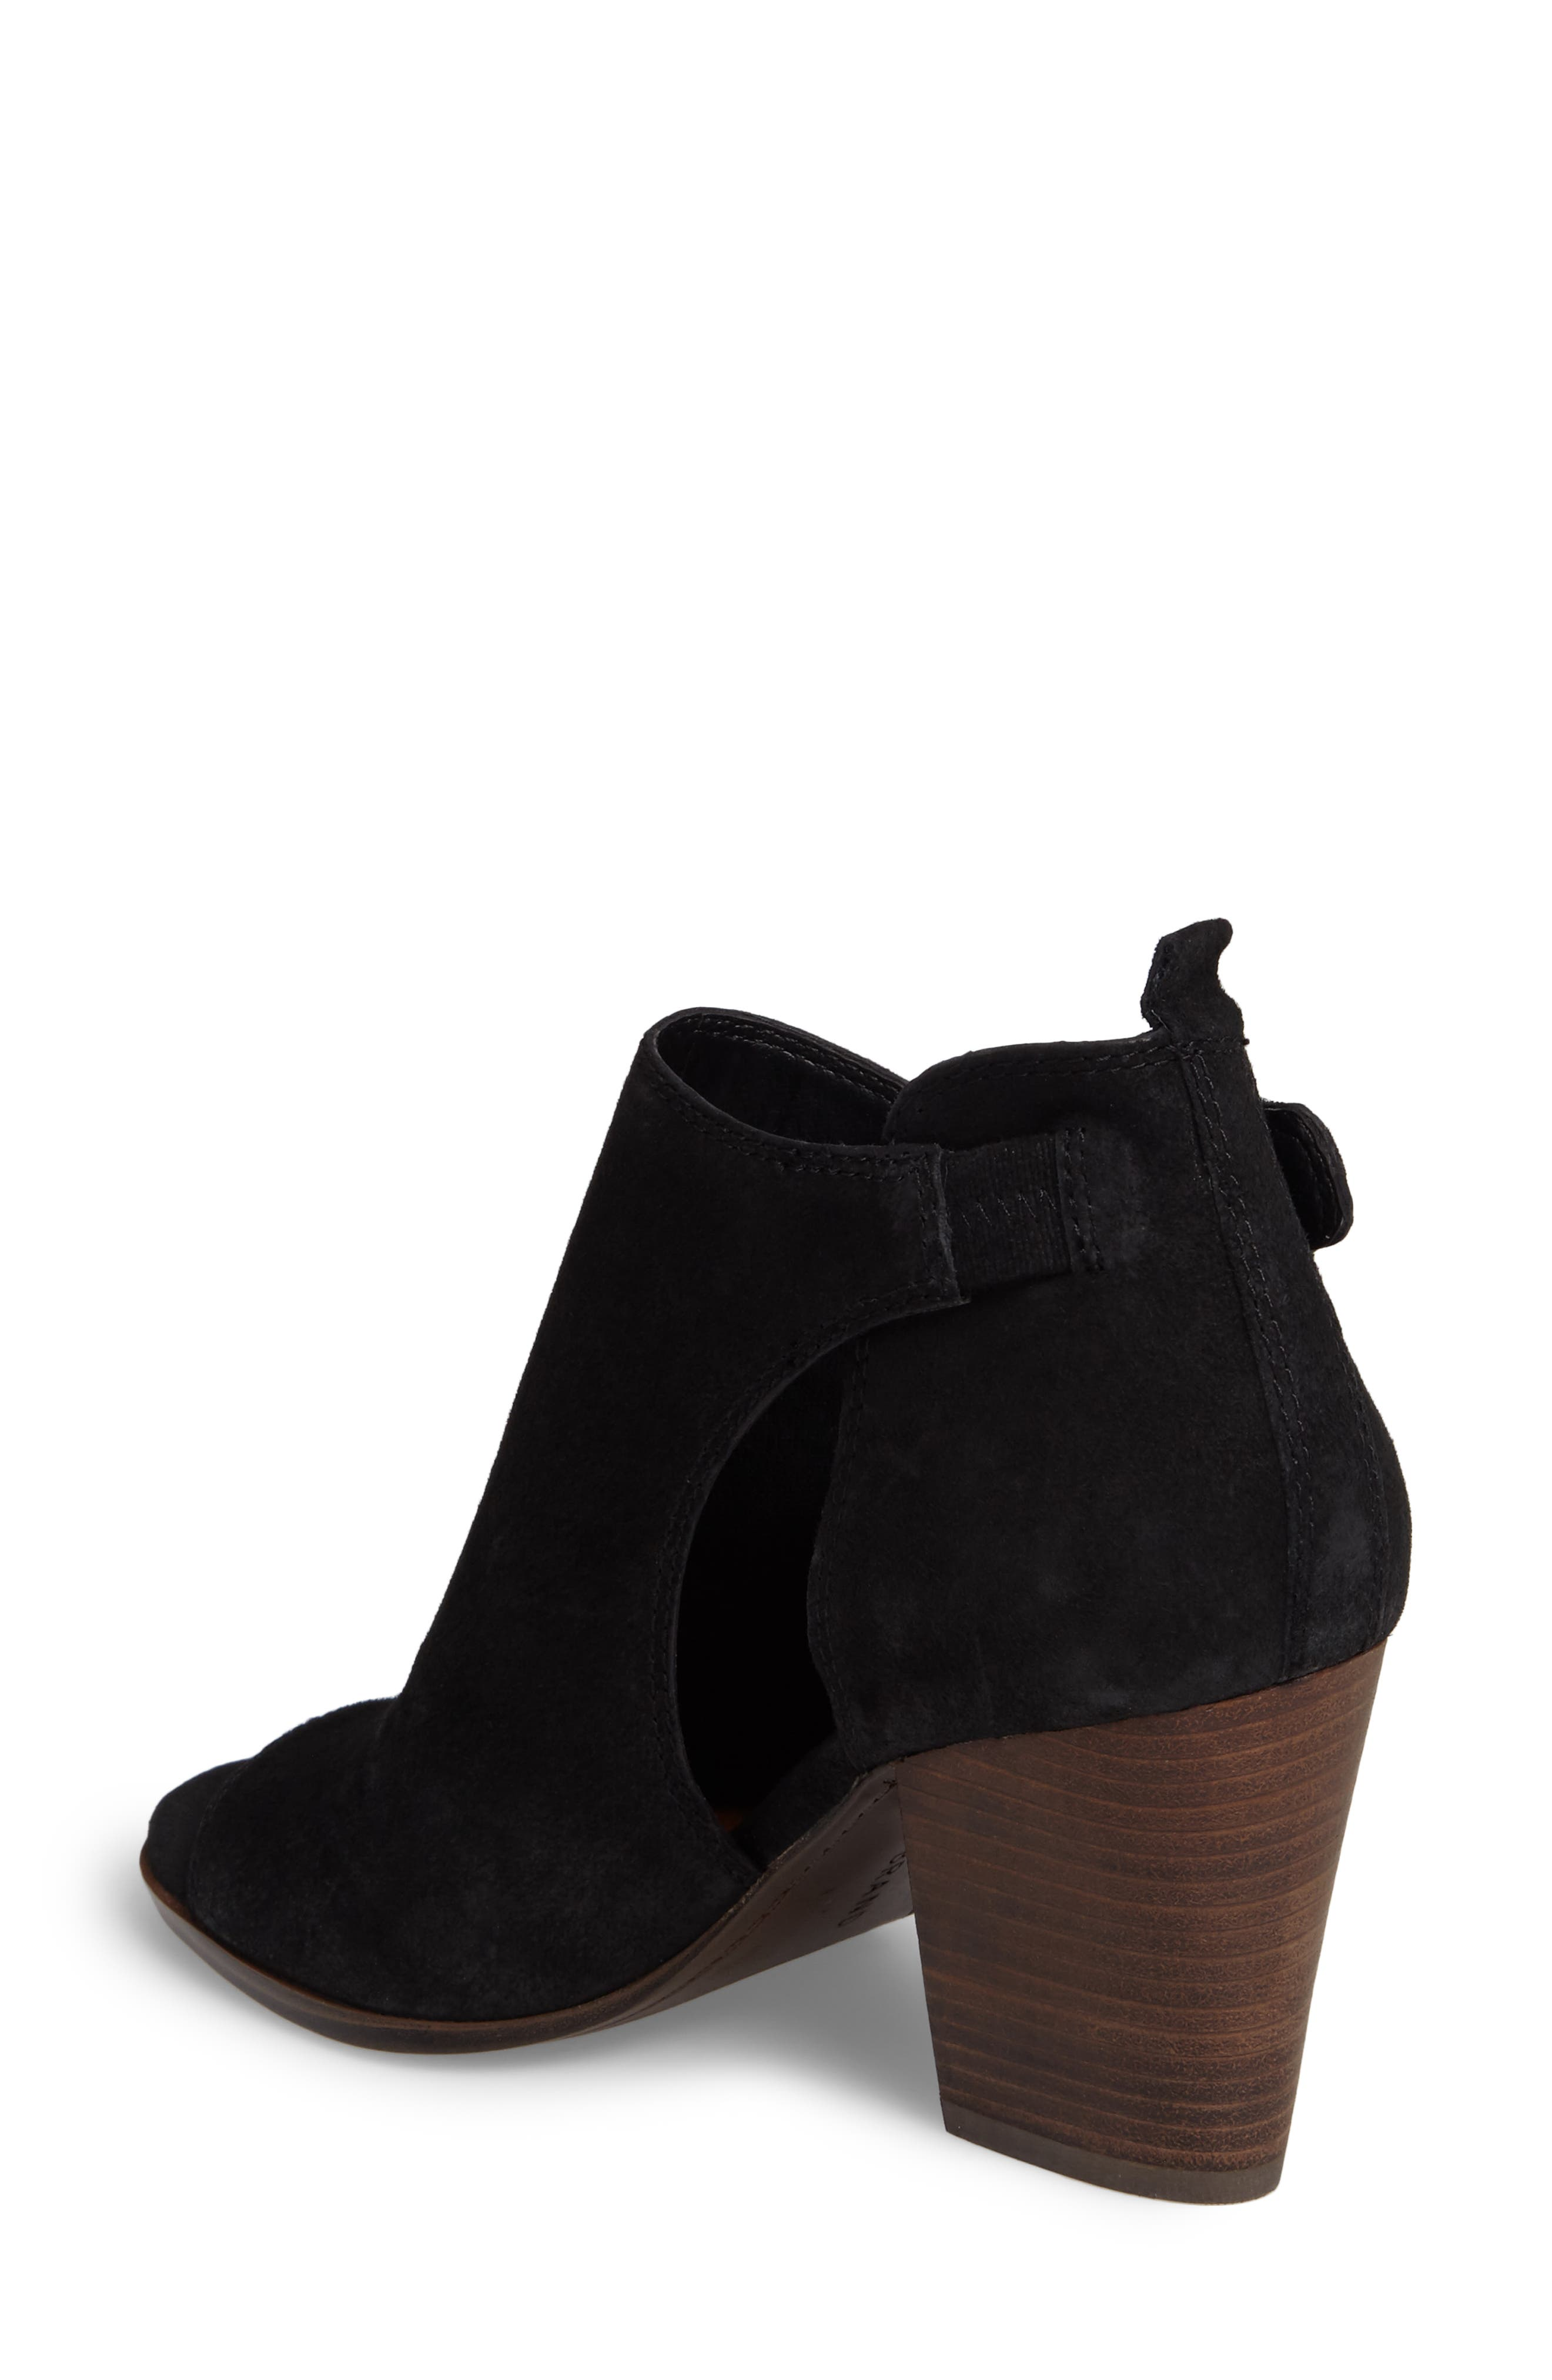 Oona Open Side Bootie,                             Alternate thumbnail 2, color,                             001